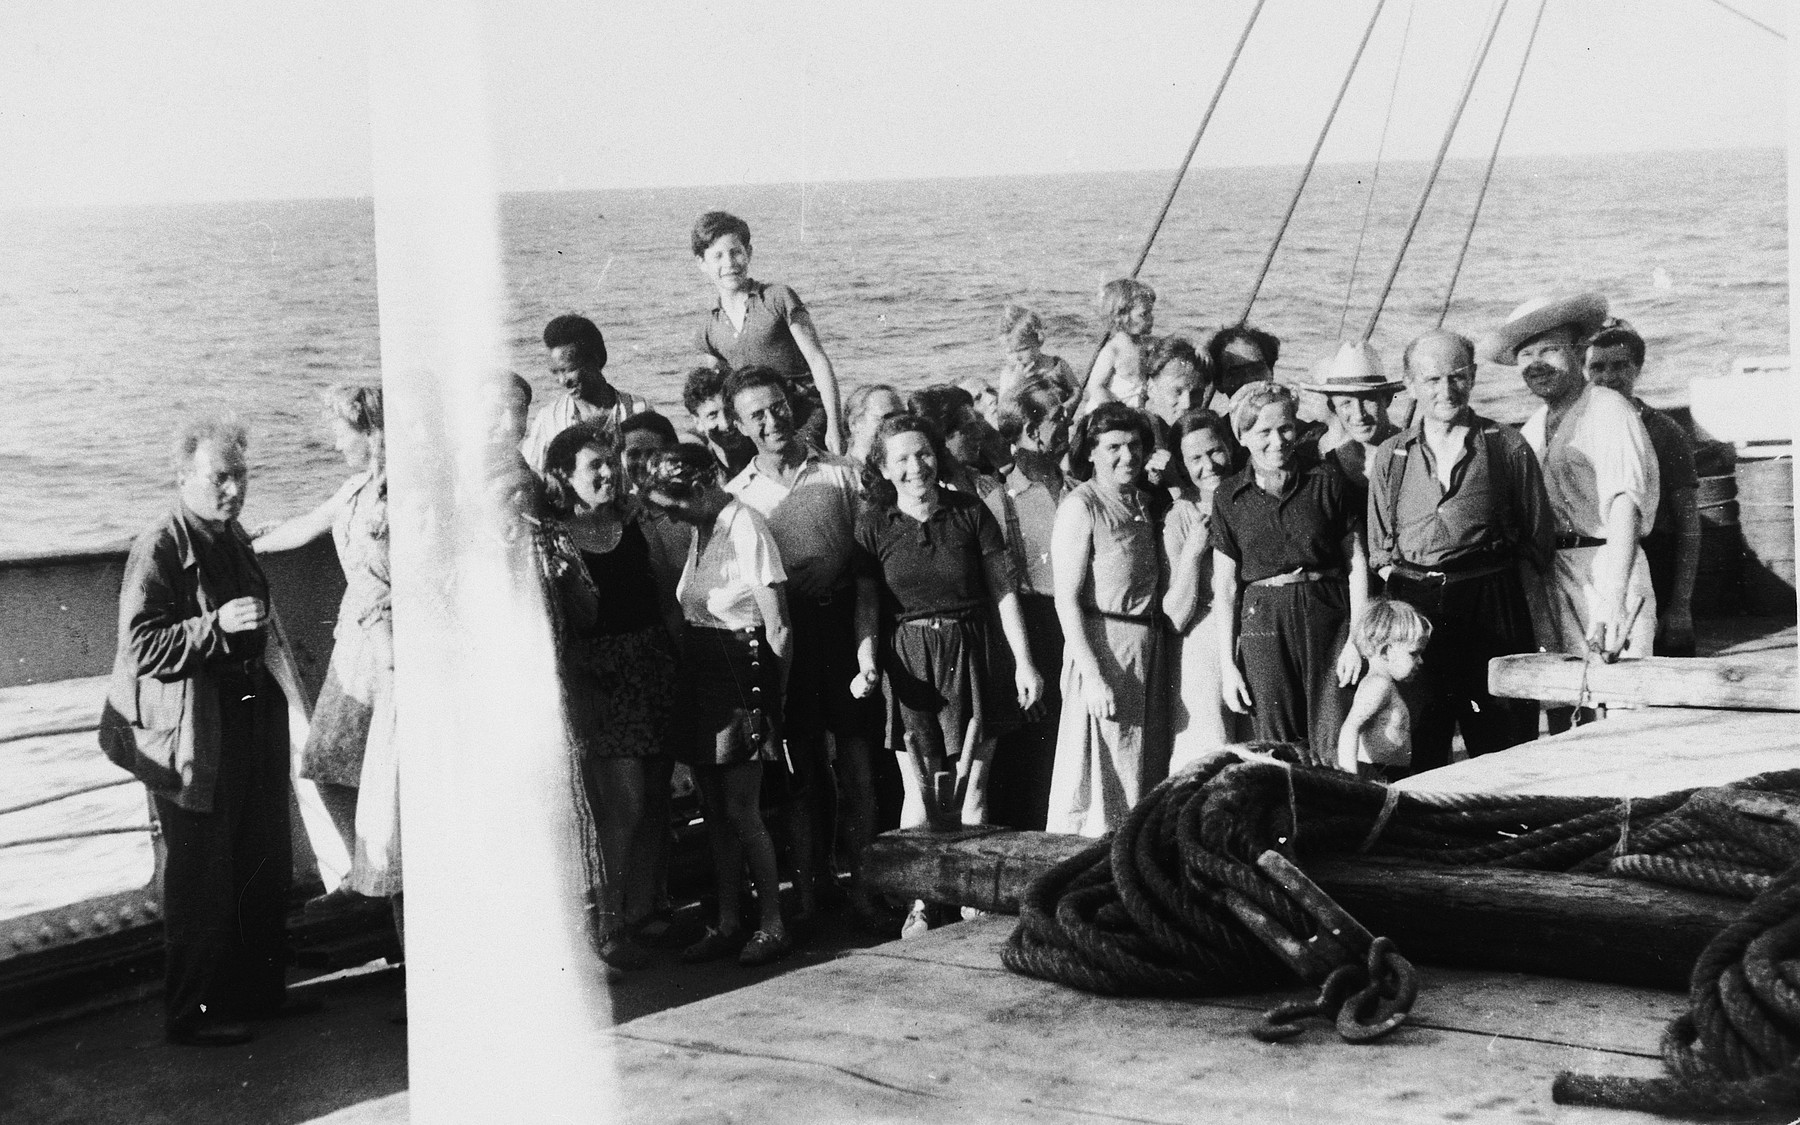 Group portrait of European refugees saved by the Emergency Rescue Committee on board the Paul-Lemerle, a converted cargo ship sailing from Marseilles to Martinique.  Among those pictured are: Victor Serge, Jacqueline Lamba Breton, Midi Branton, Mrs. Lam, Wifredo Lam, Katrin Kirschmann, Dyno Lowenstein, Harry Branton, Carola Osner, Walter Barth (in background holding a child), Ate Barth, Karl Osner (carrying his daughter on his shoulder), Emmy Orsech-Bloch, Erika Giepen, Margret Osner, Karl Langerhans, and Hubert Giepen.